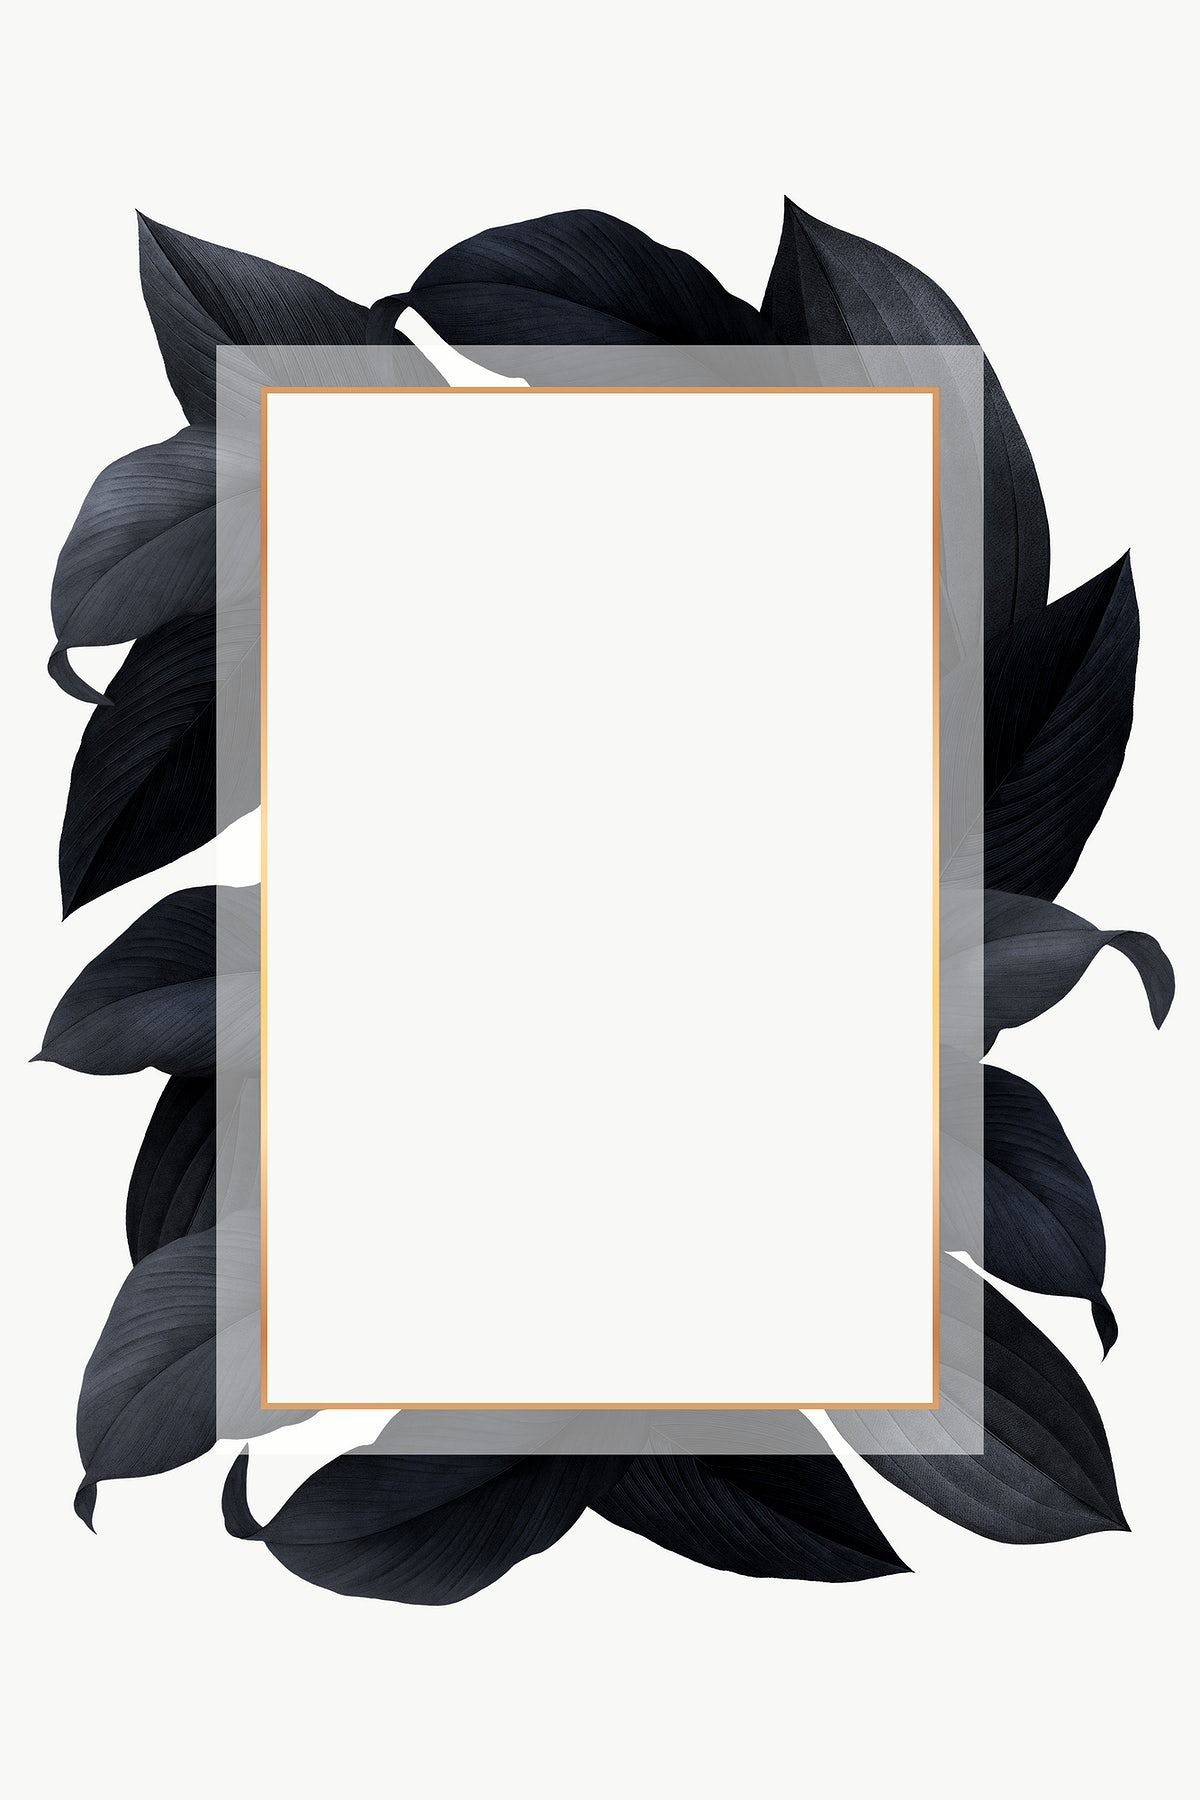 Download Premium Png Of Black Leaves With Golden Rectangle Frame Design Black Leaves Frame Design Sale Poster